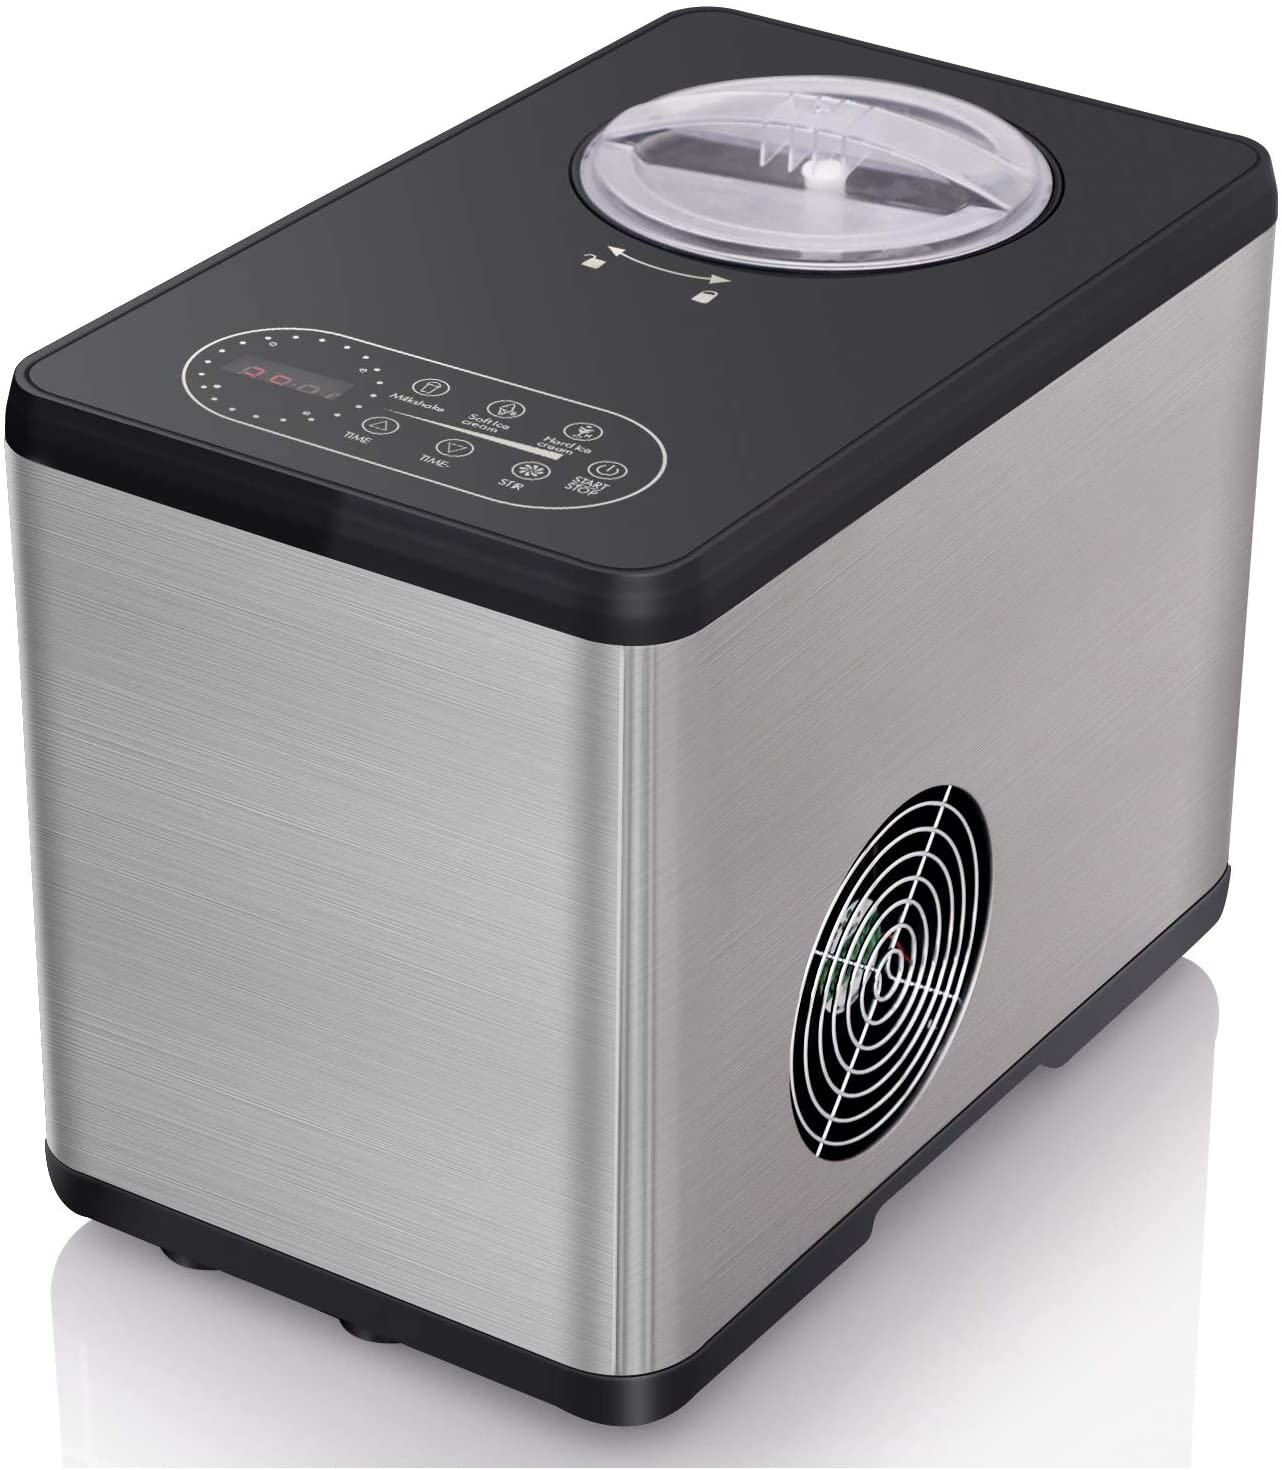 Northair Compressor Ice Cream Maker with LCD Display Screen, Countdown Timer